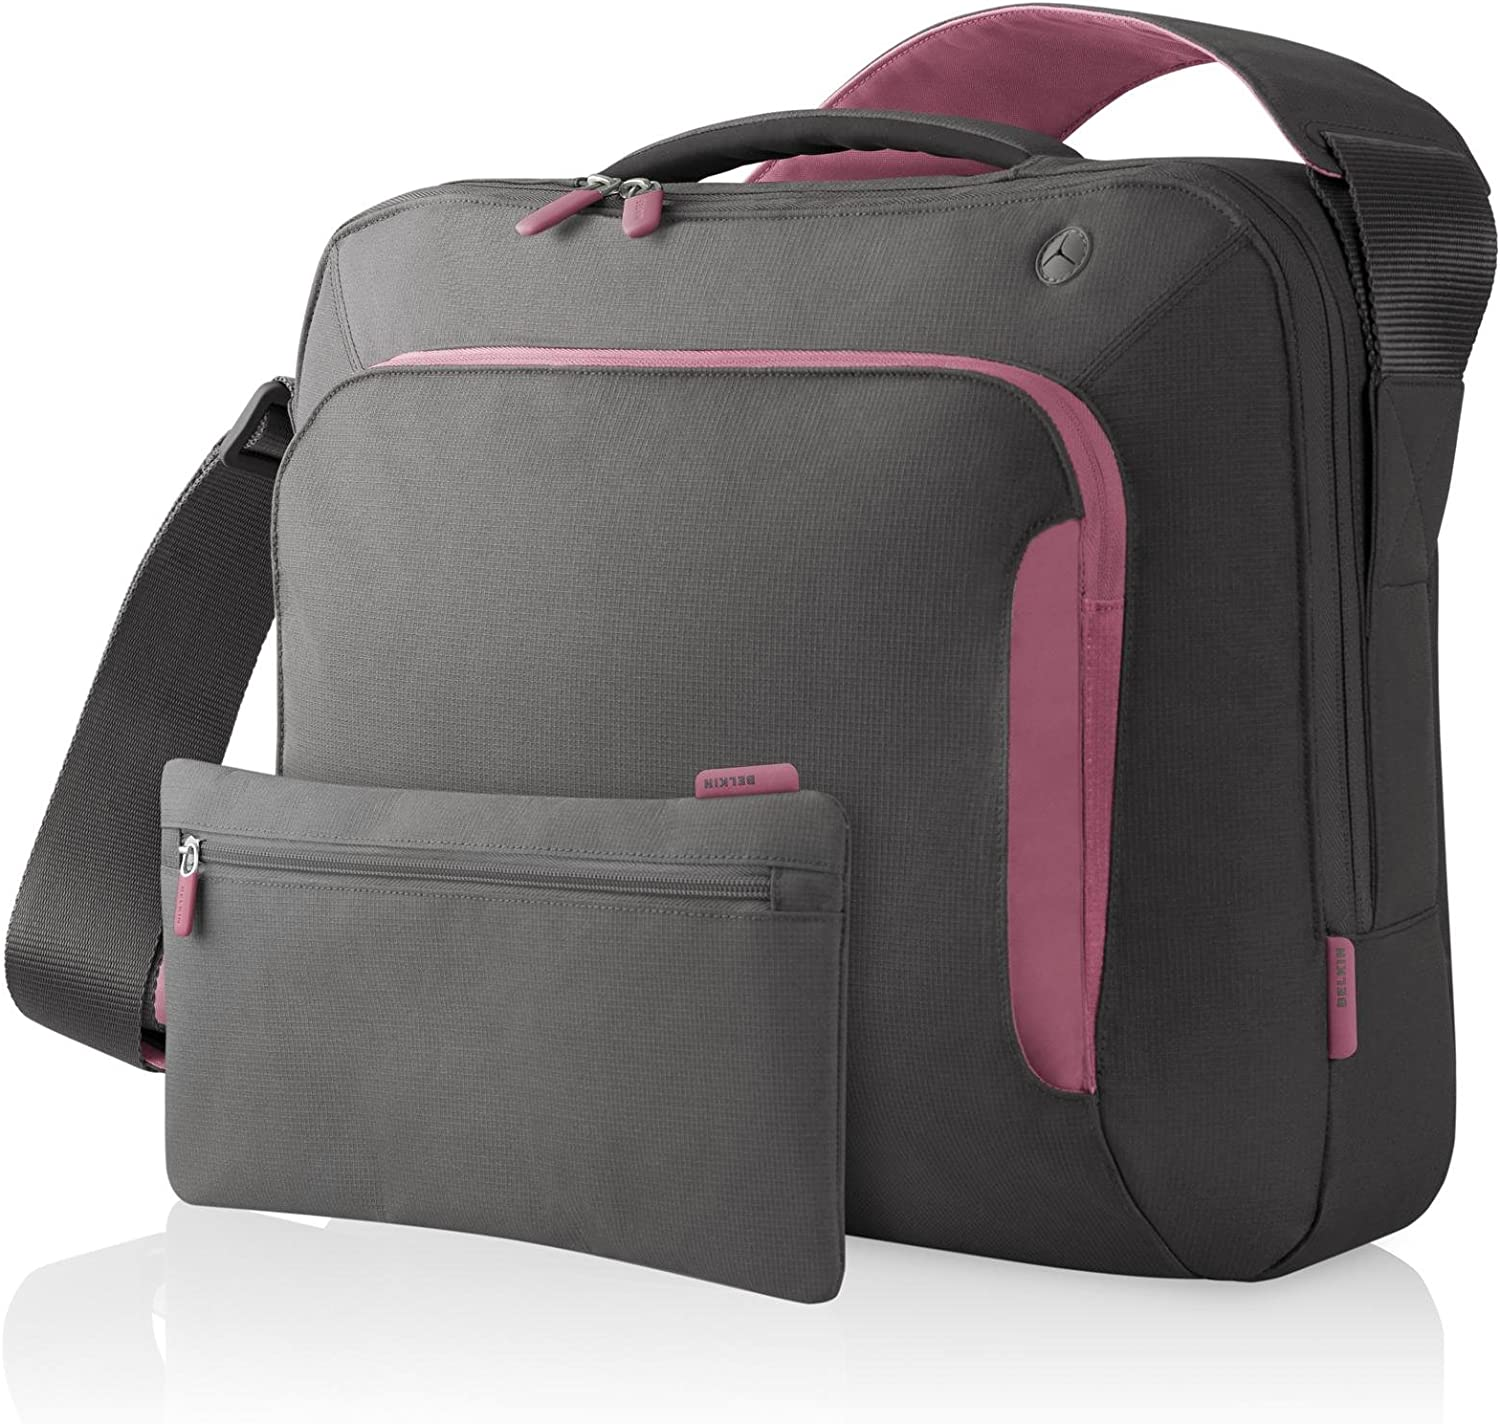 Belkin Neoprene Messenger Bag for Notebooks up to 15.4-Inch Soft Grey/Flamingo Pink